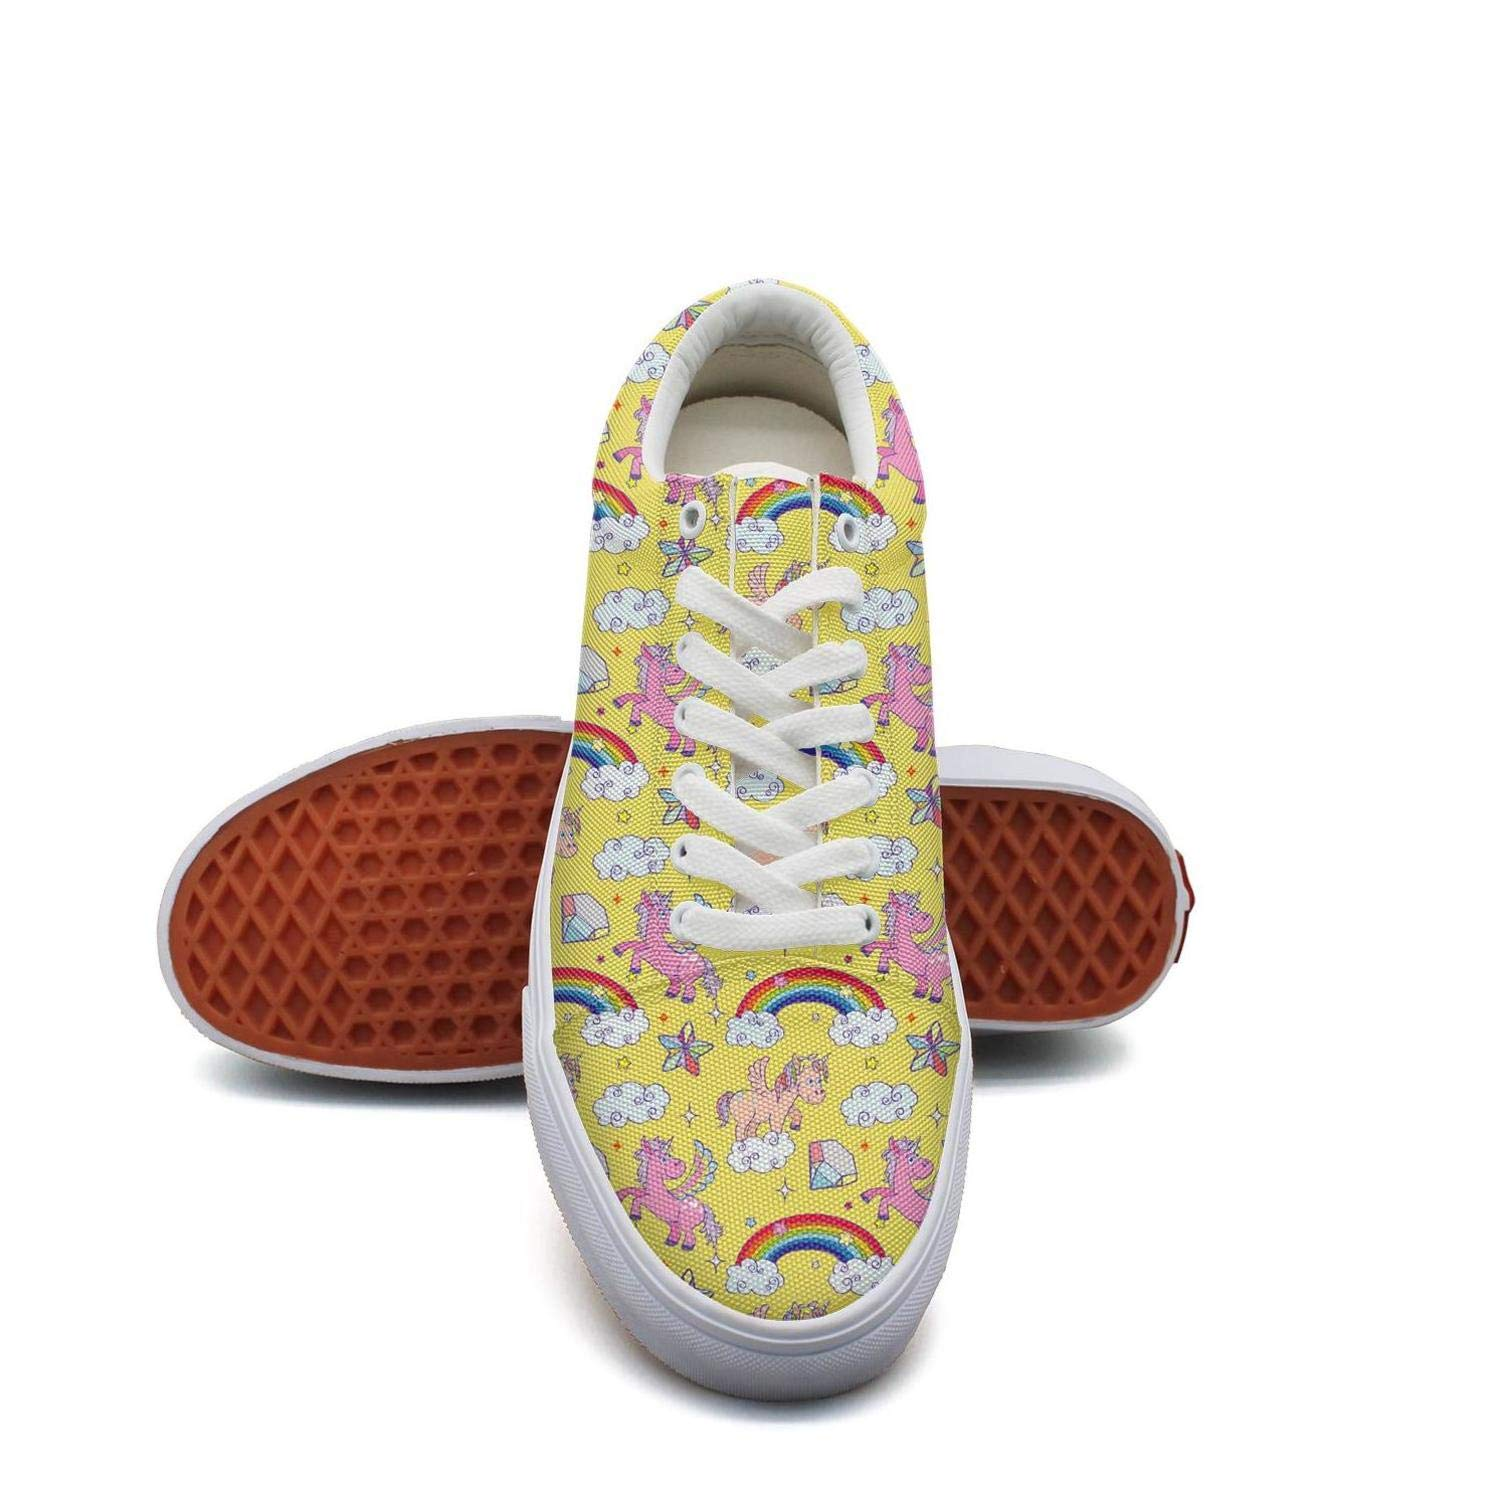 Mortimer Womens Canvas Fashion Sneakers Miracle Rainbow Unicorn Wizard Yellow Skate Shoe Lace Up Casual Shoes